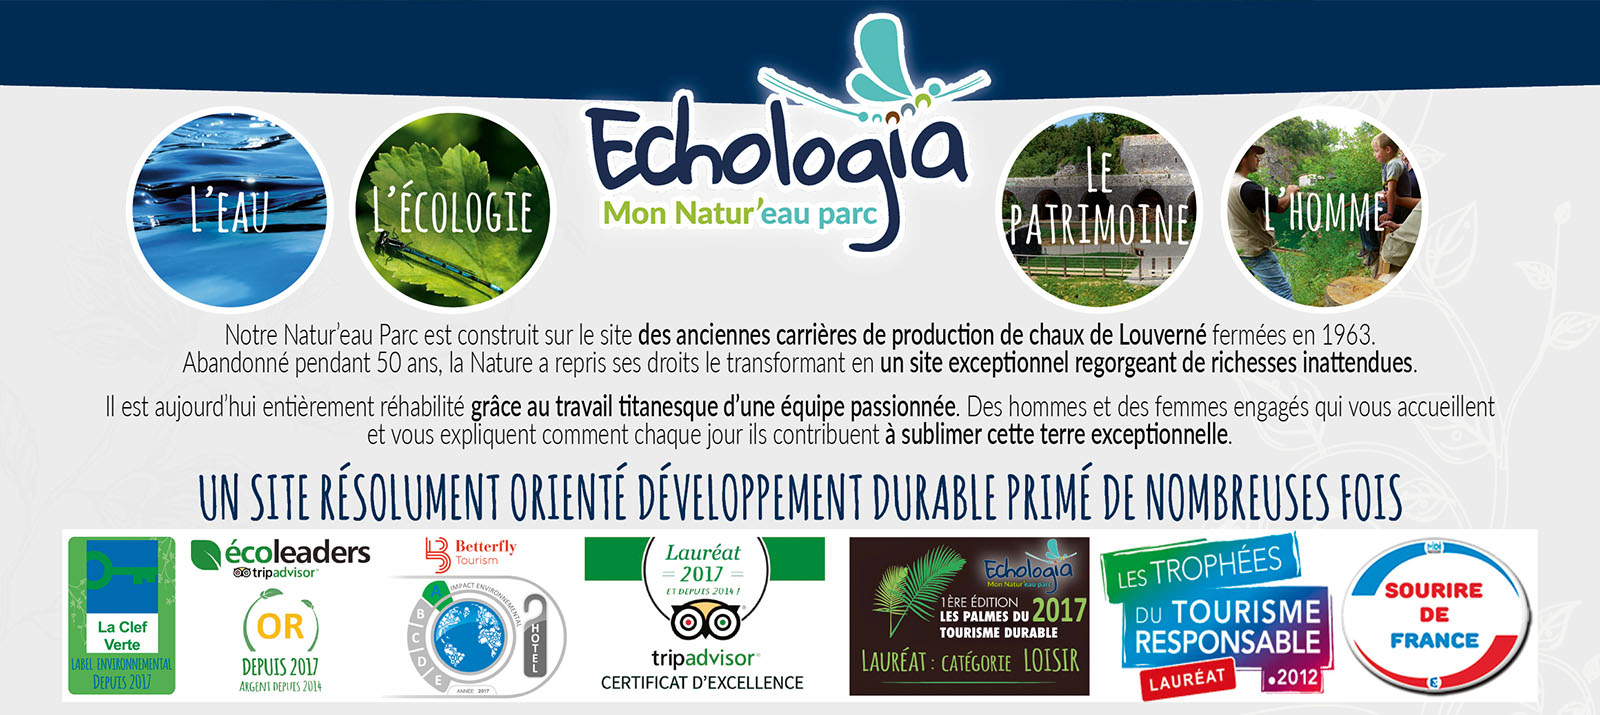 Salon de l Aquaponie sur Echologia developpement durable